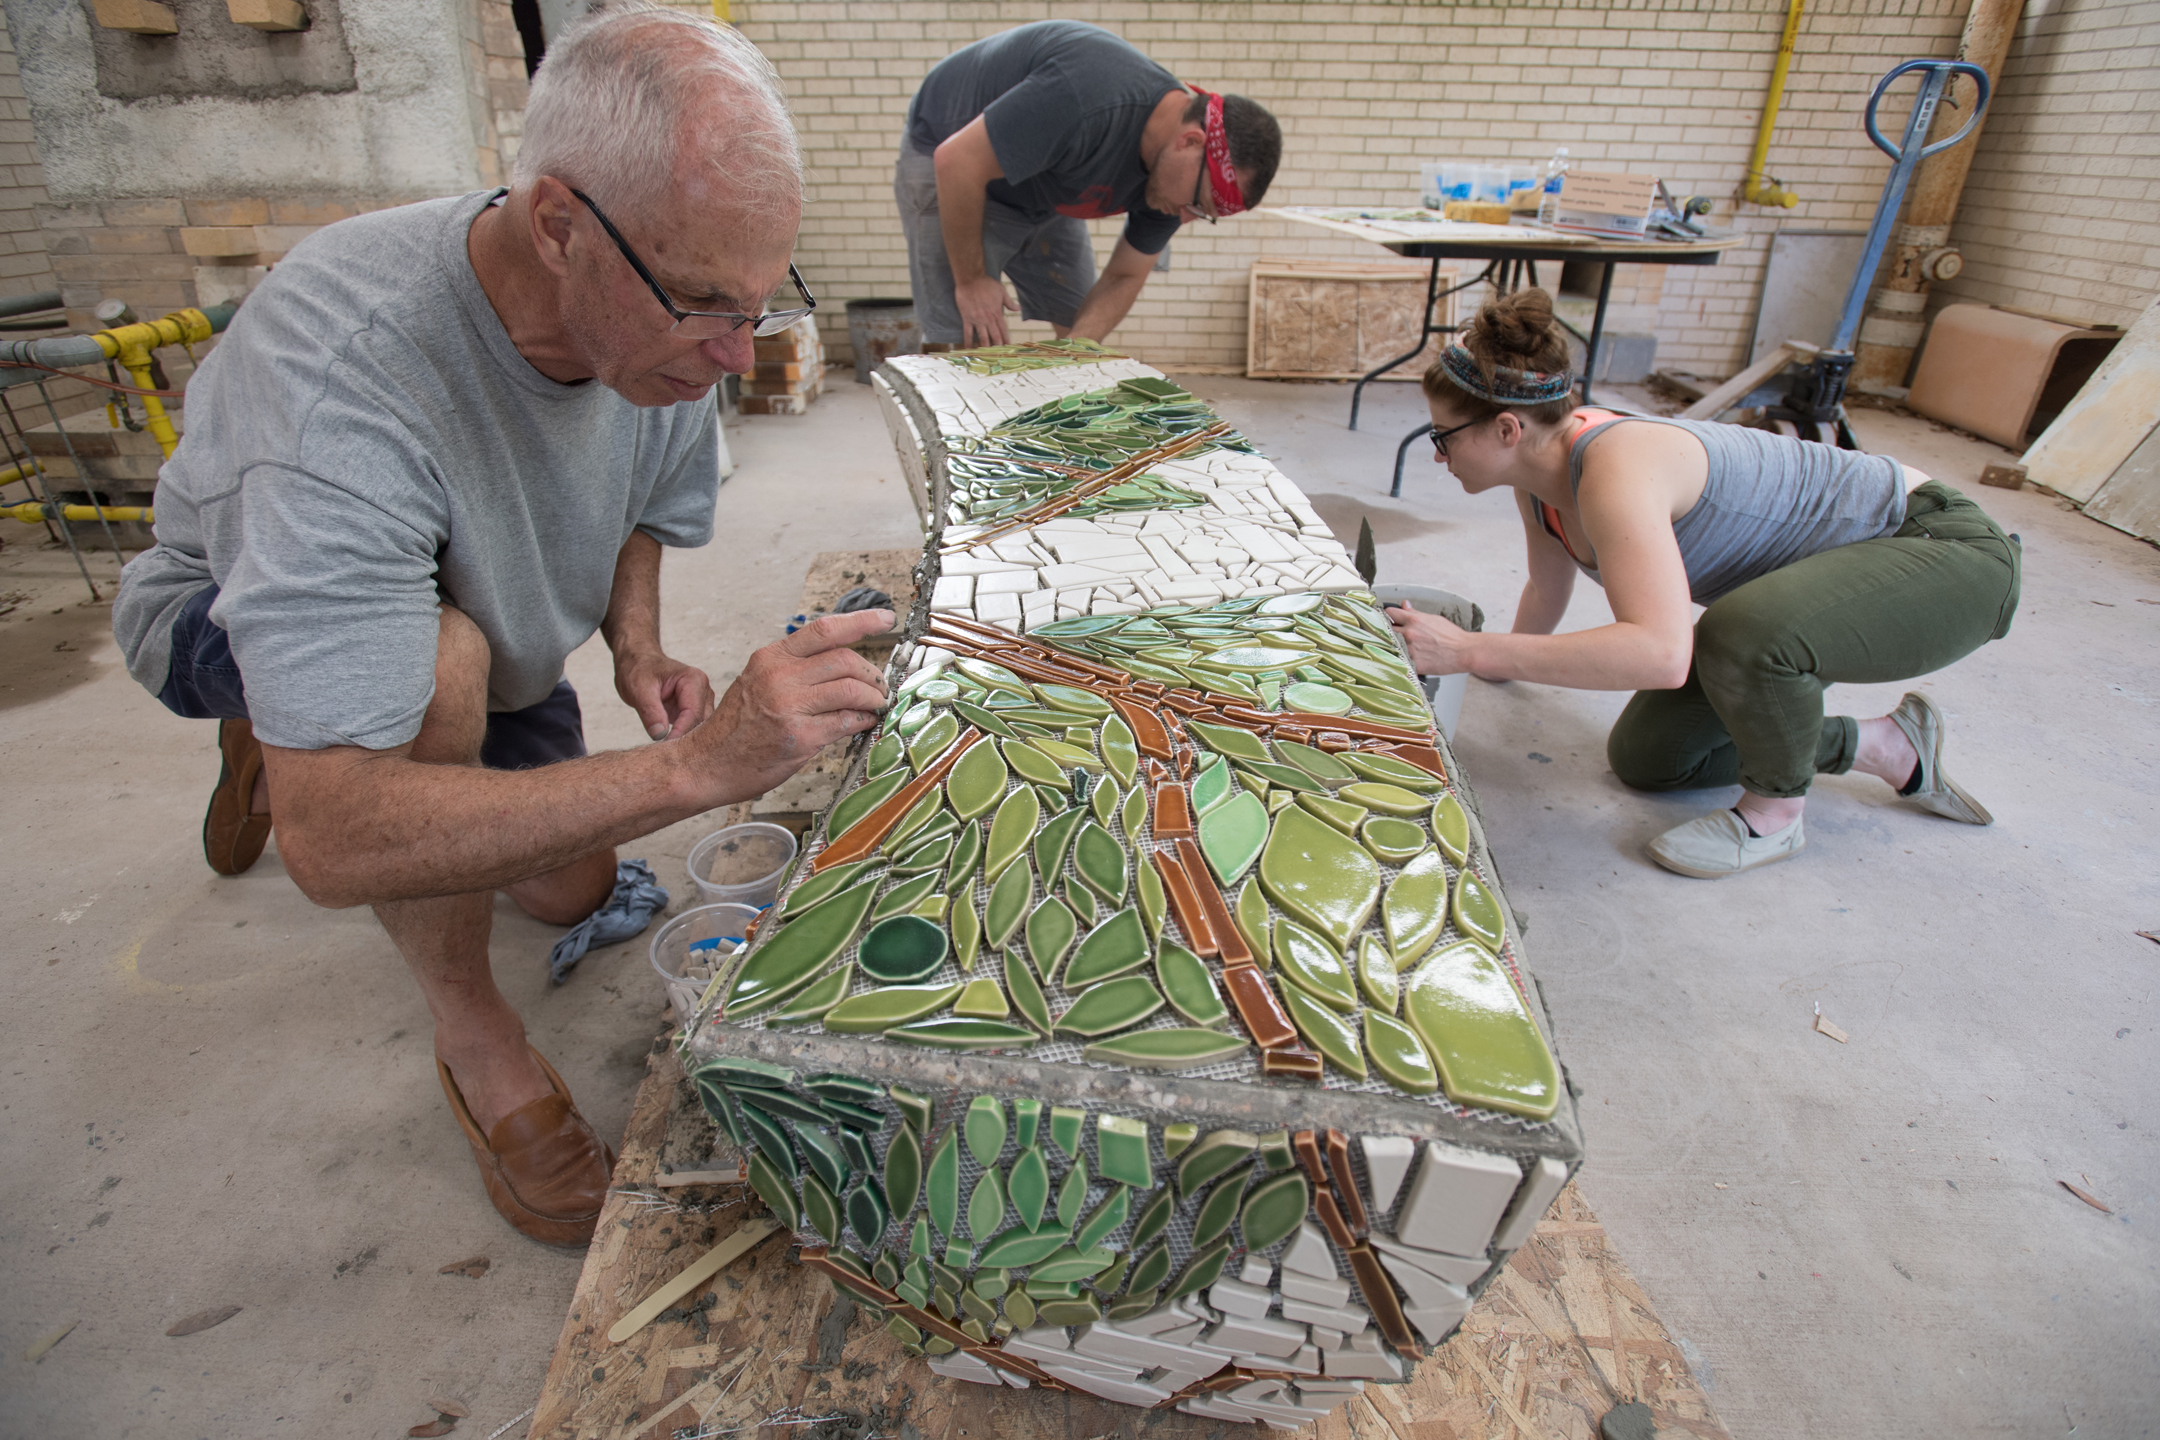 Students and me grouting the tiles.  Photo by Michael Spooneybarger